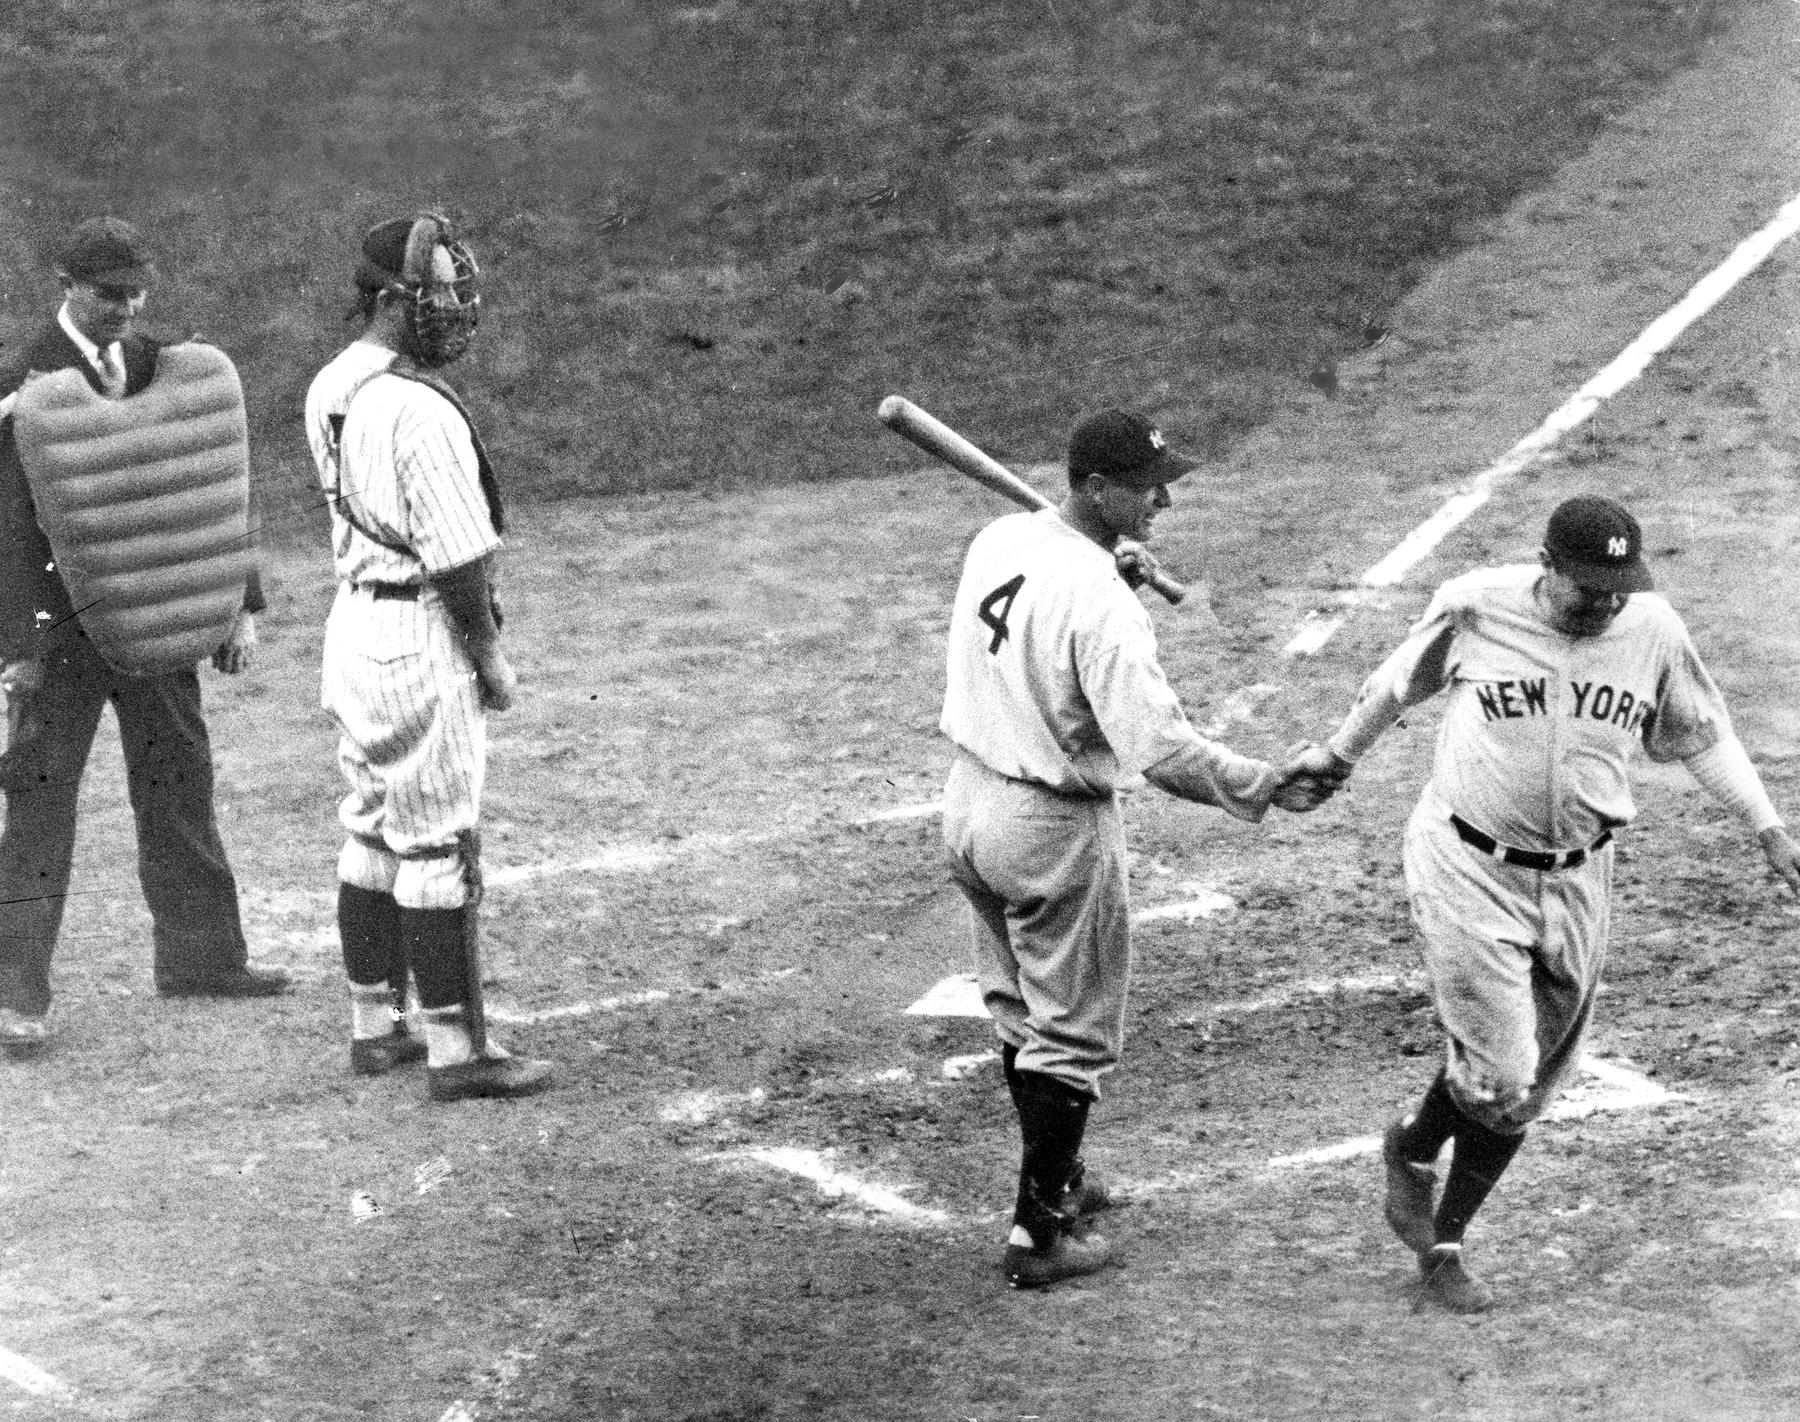 """Babe Ruth greeted by Lou Gehrig at home plate after hitting his """"Called Shot"""" - BL-6499.76 (National Baseball Hall of Fame Library)"""